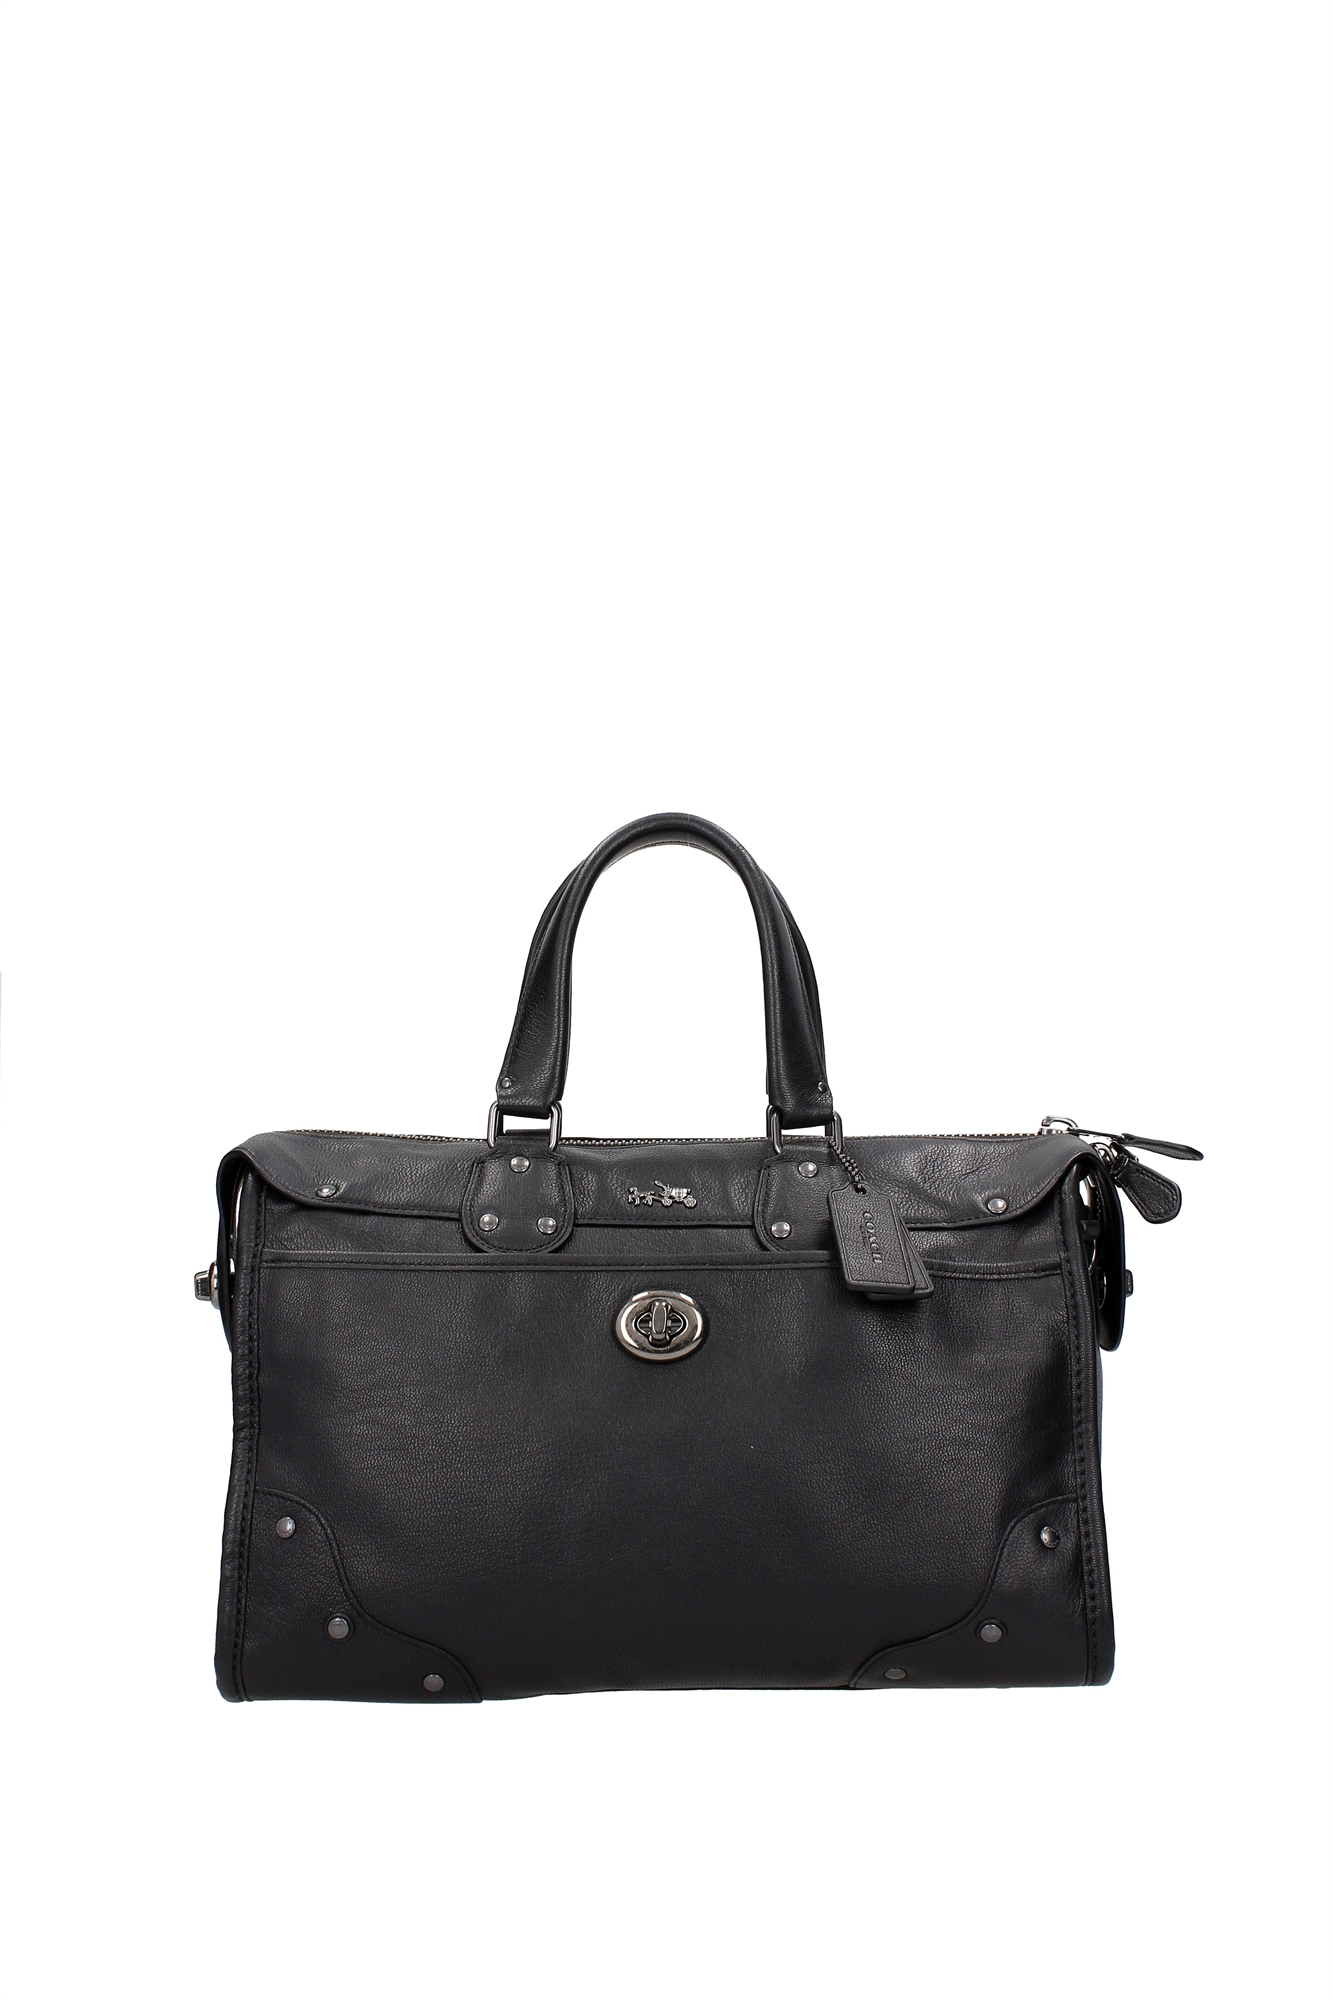 New Hamilton Womenu0026#39;s Large Leather Tote Bag Black